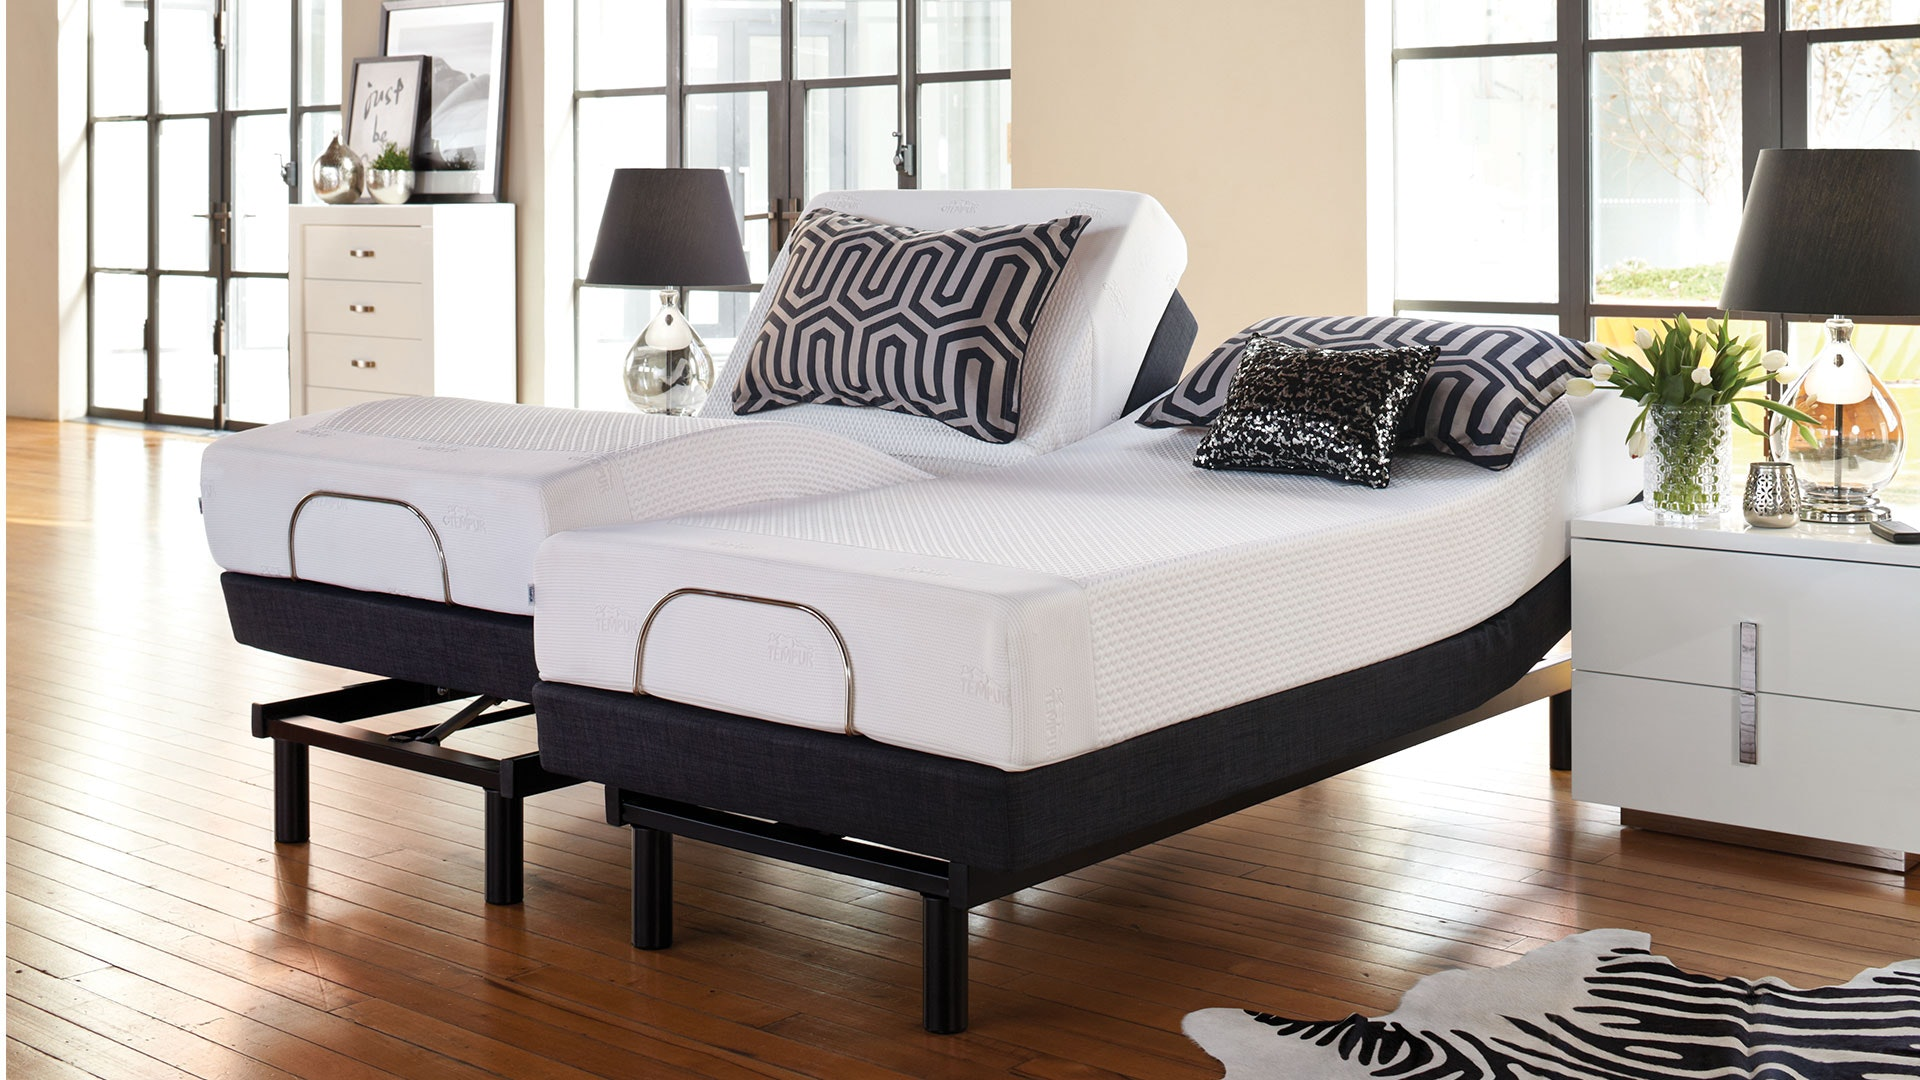 19cm Split Super King Mattress with Lifestyle Adjustable Base by Tempur